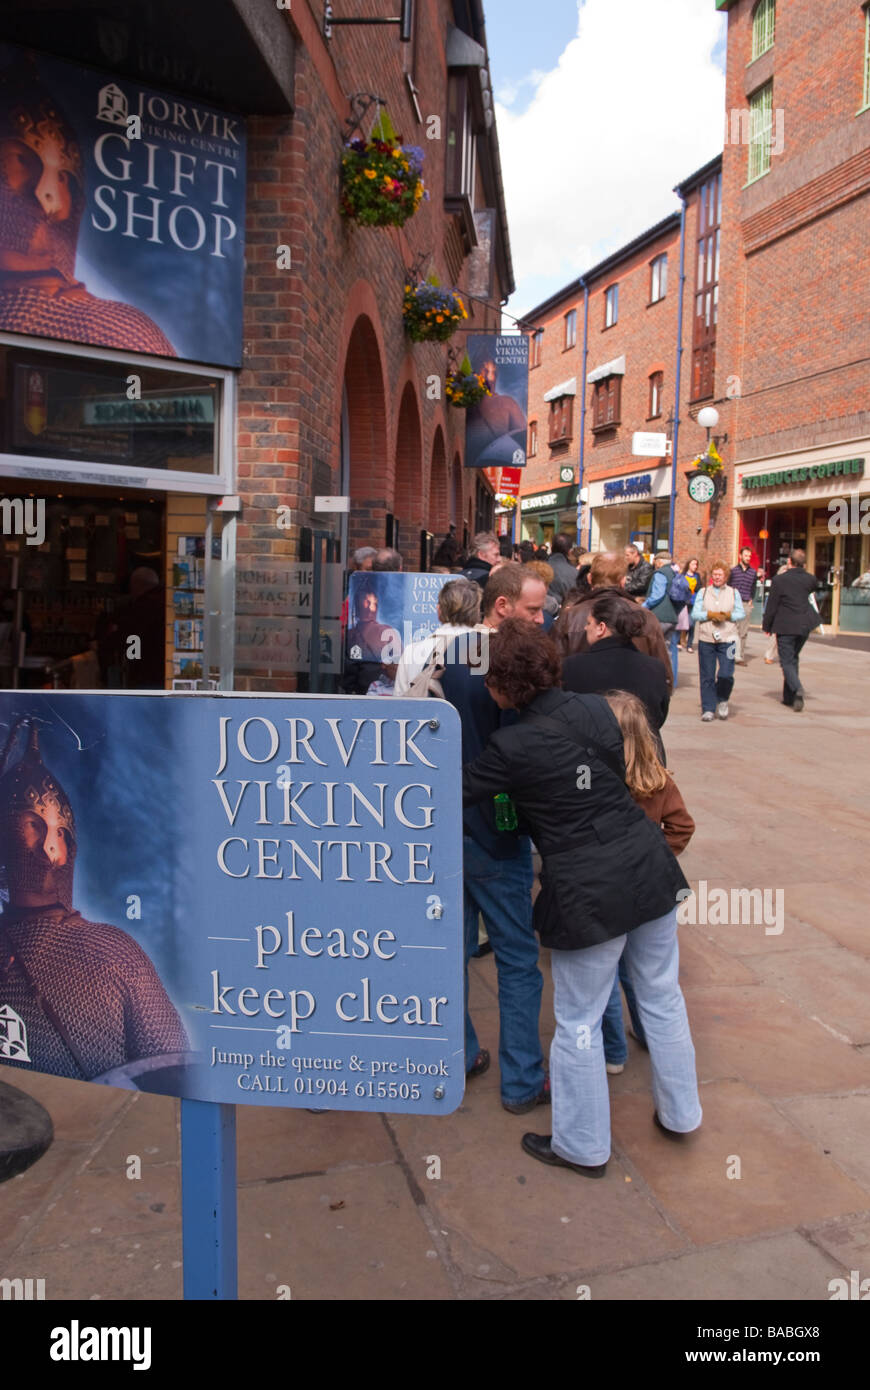 People queing up in a que to visit the Jorvik viking centre museum in York,Yorkshire,Uk - Stock Image